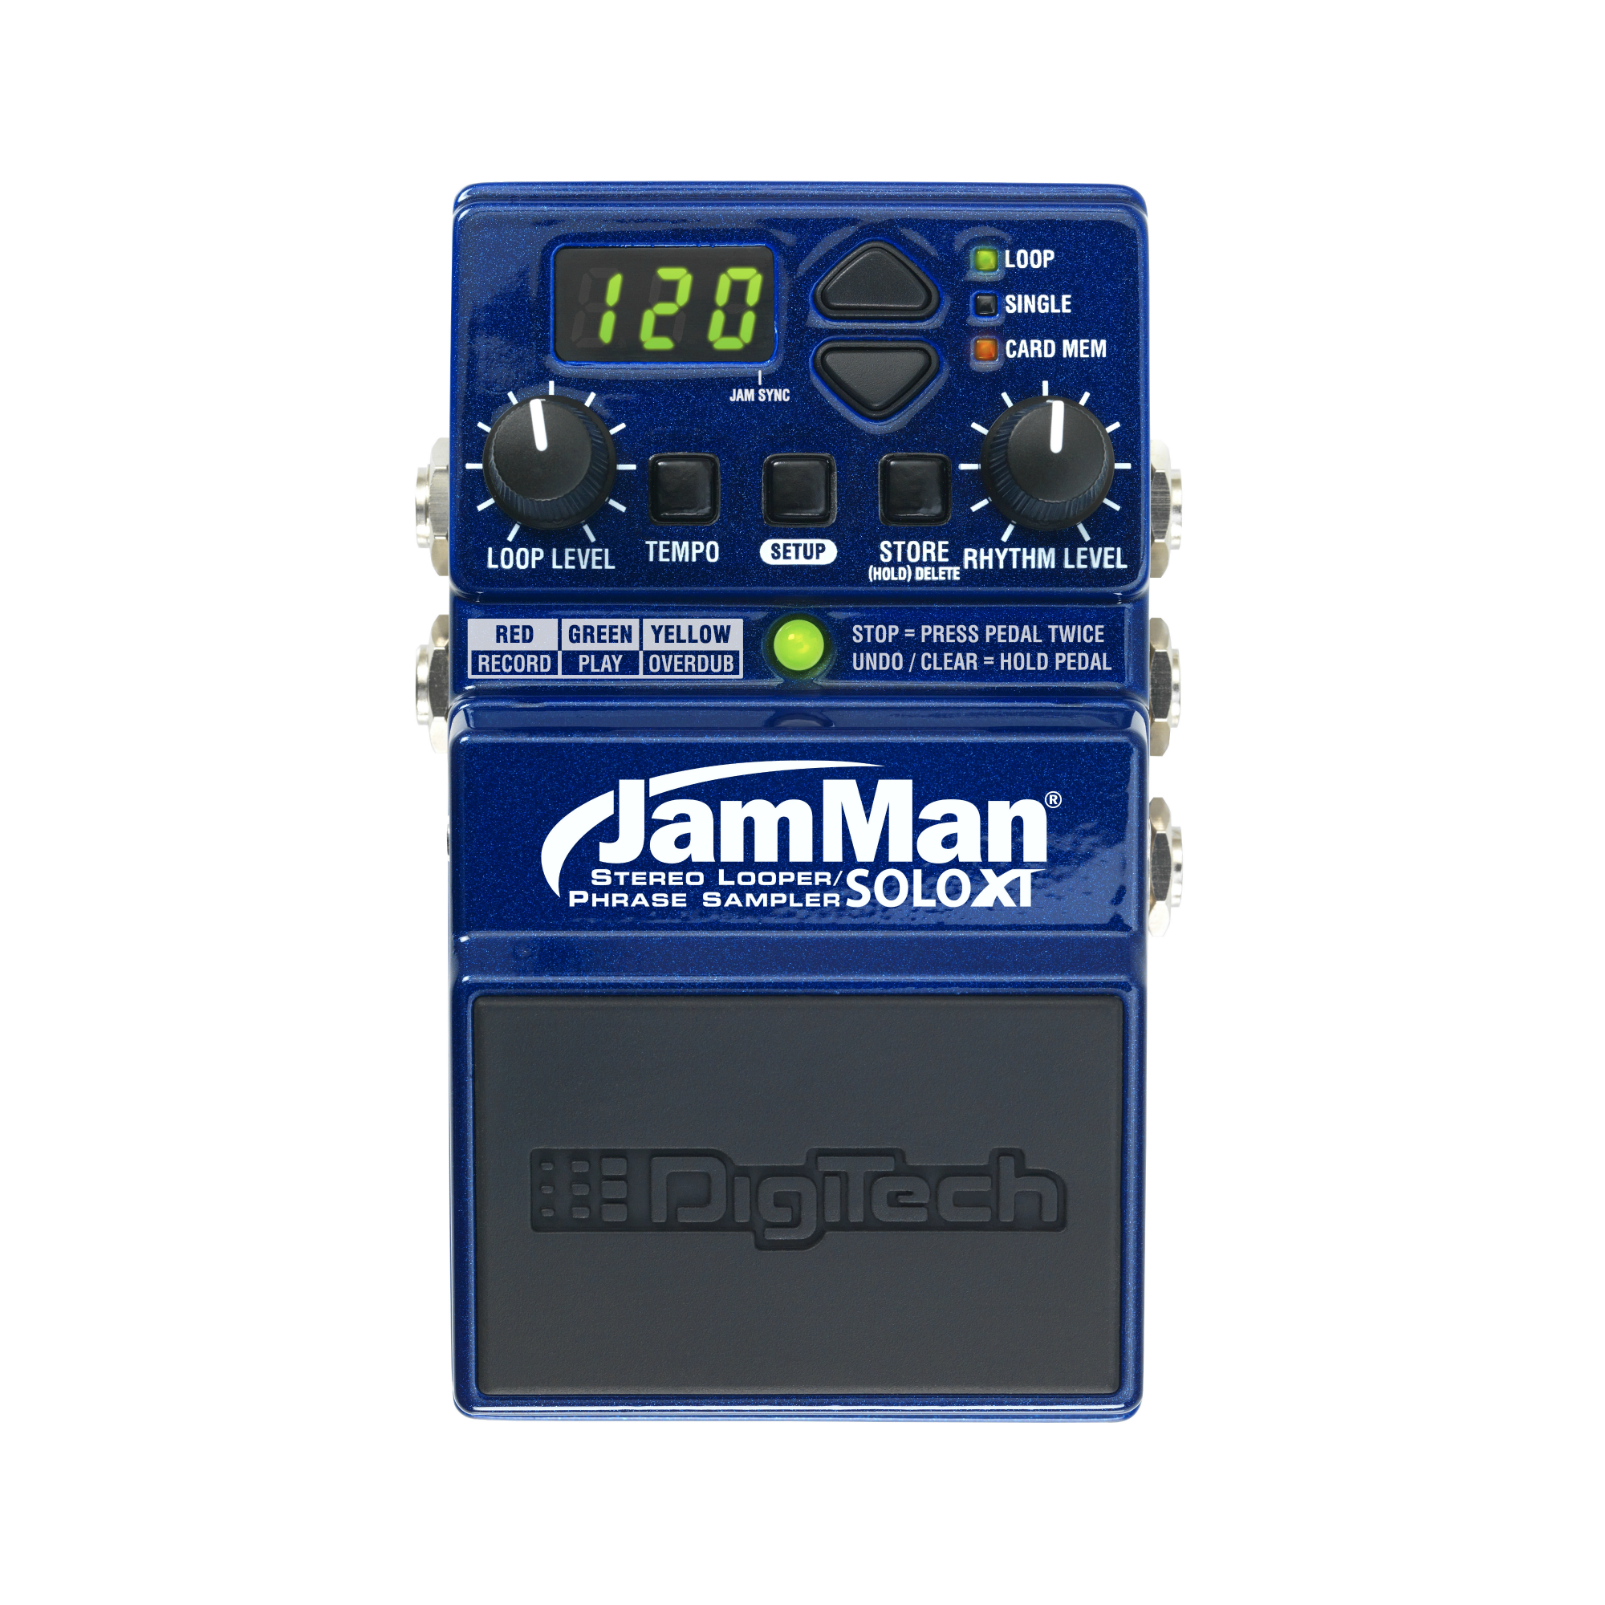 JamMan Solo XT (discontinued) - Blue - Stereo Looping in a Compact Pedal with JamSync - Front